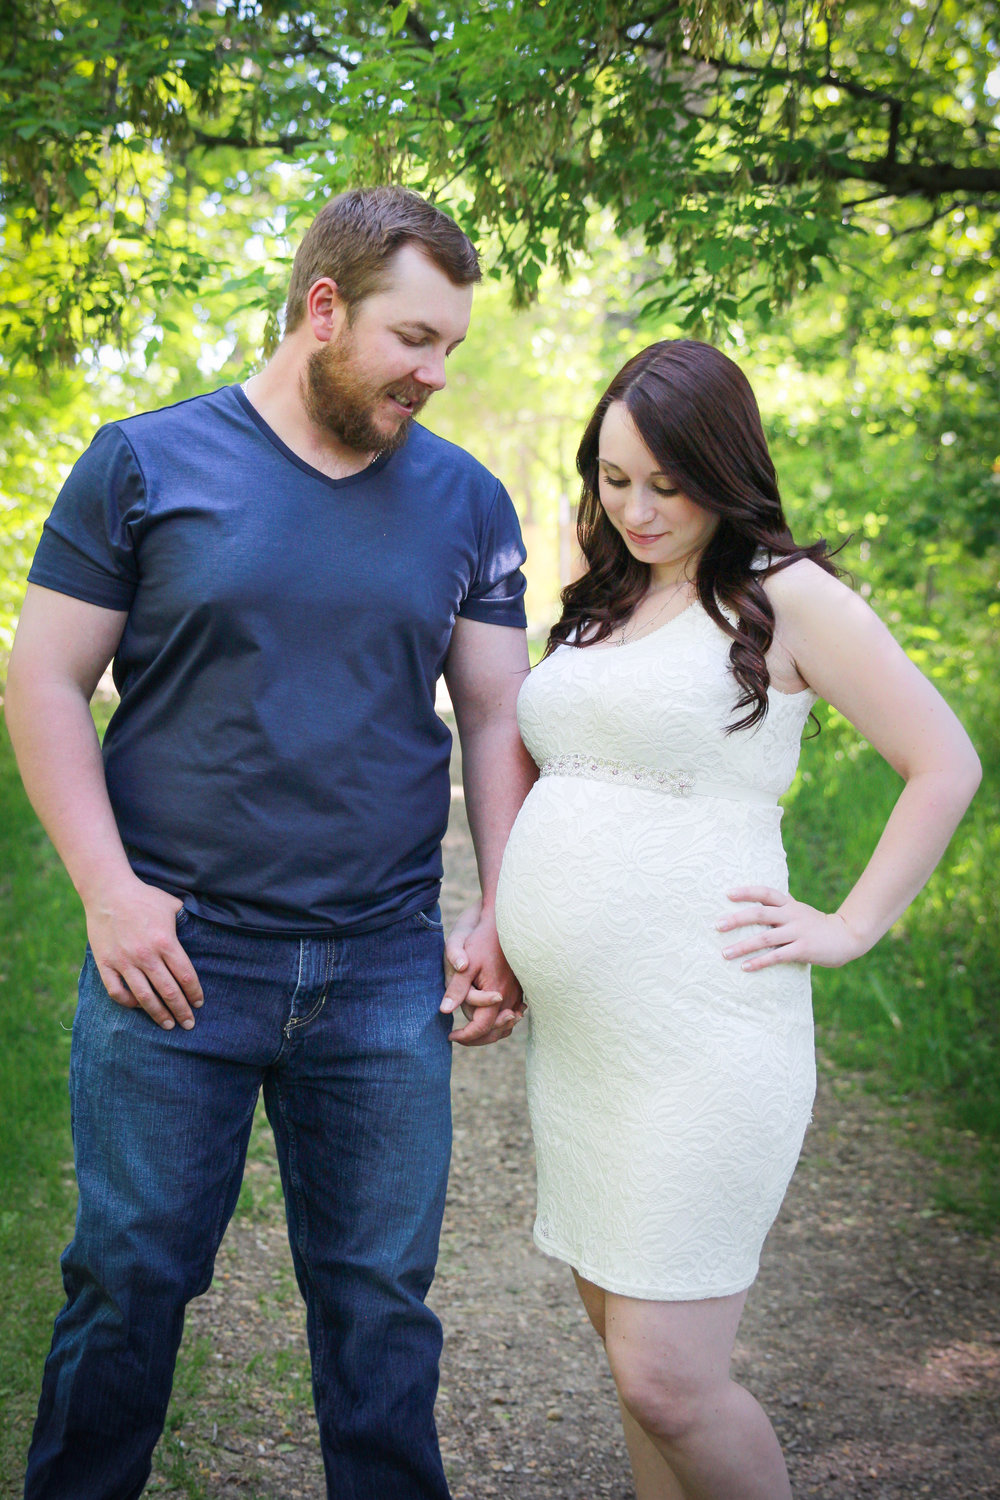 M&P {Expecting!}_WEB-39.jpg